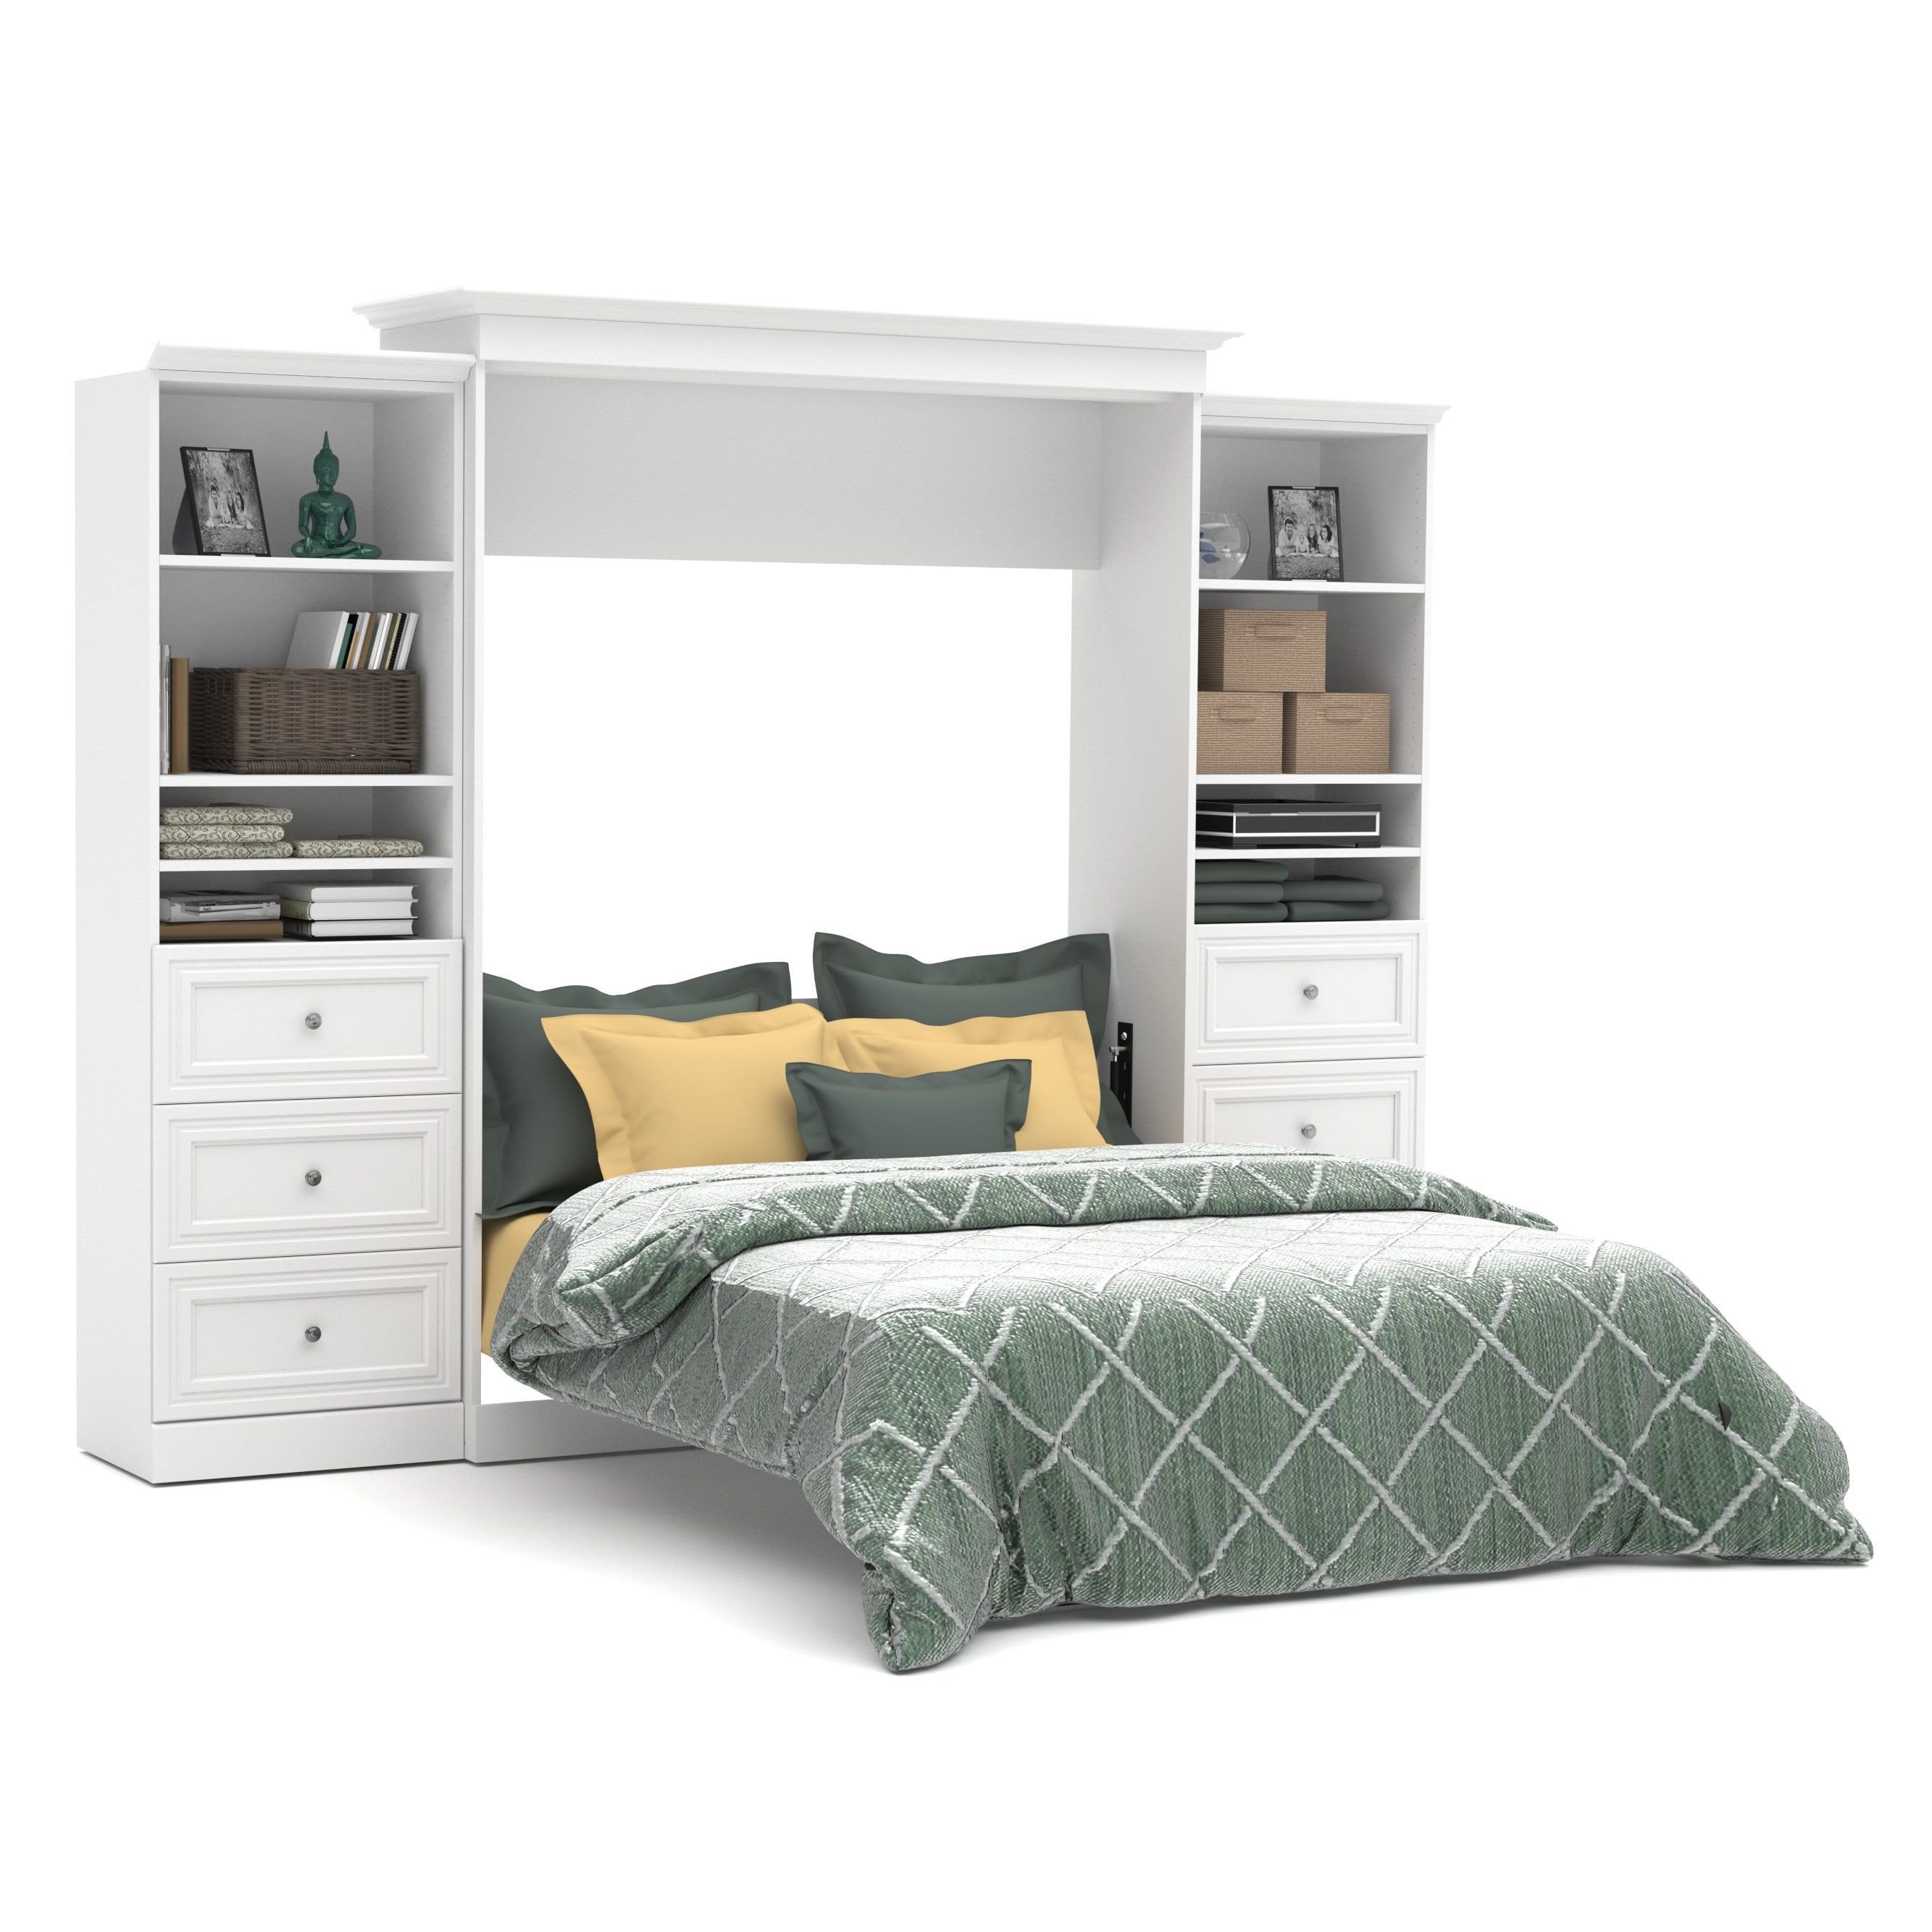 Wall Unit Bedroom Set Beautiful Line Shopping Bedding Furniture Electronics Jewelry